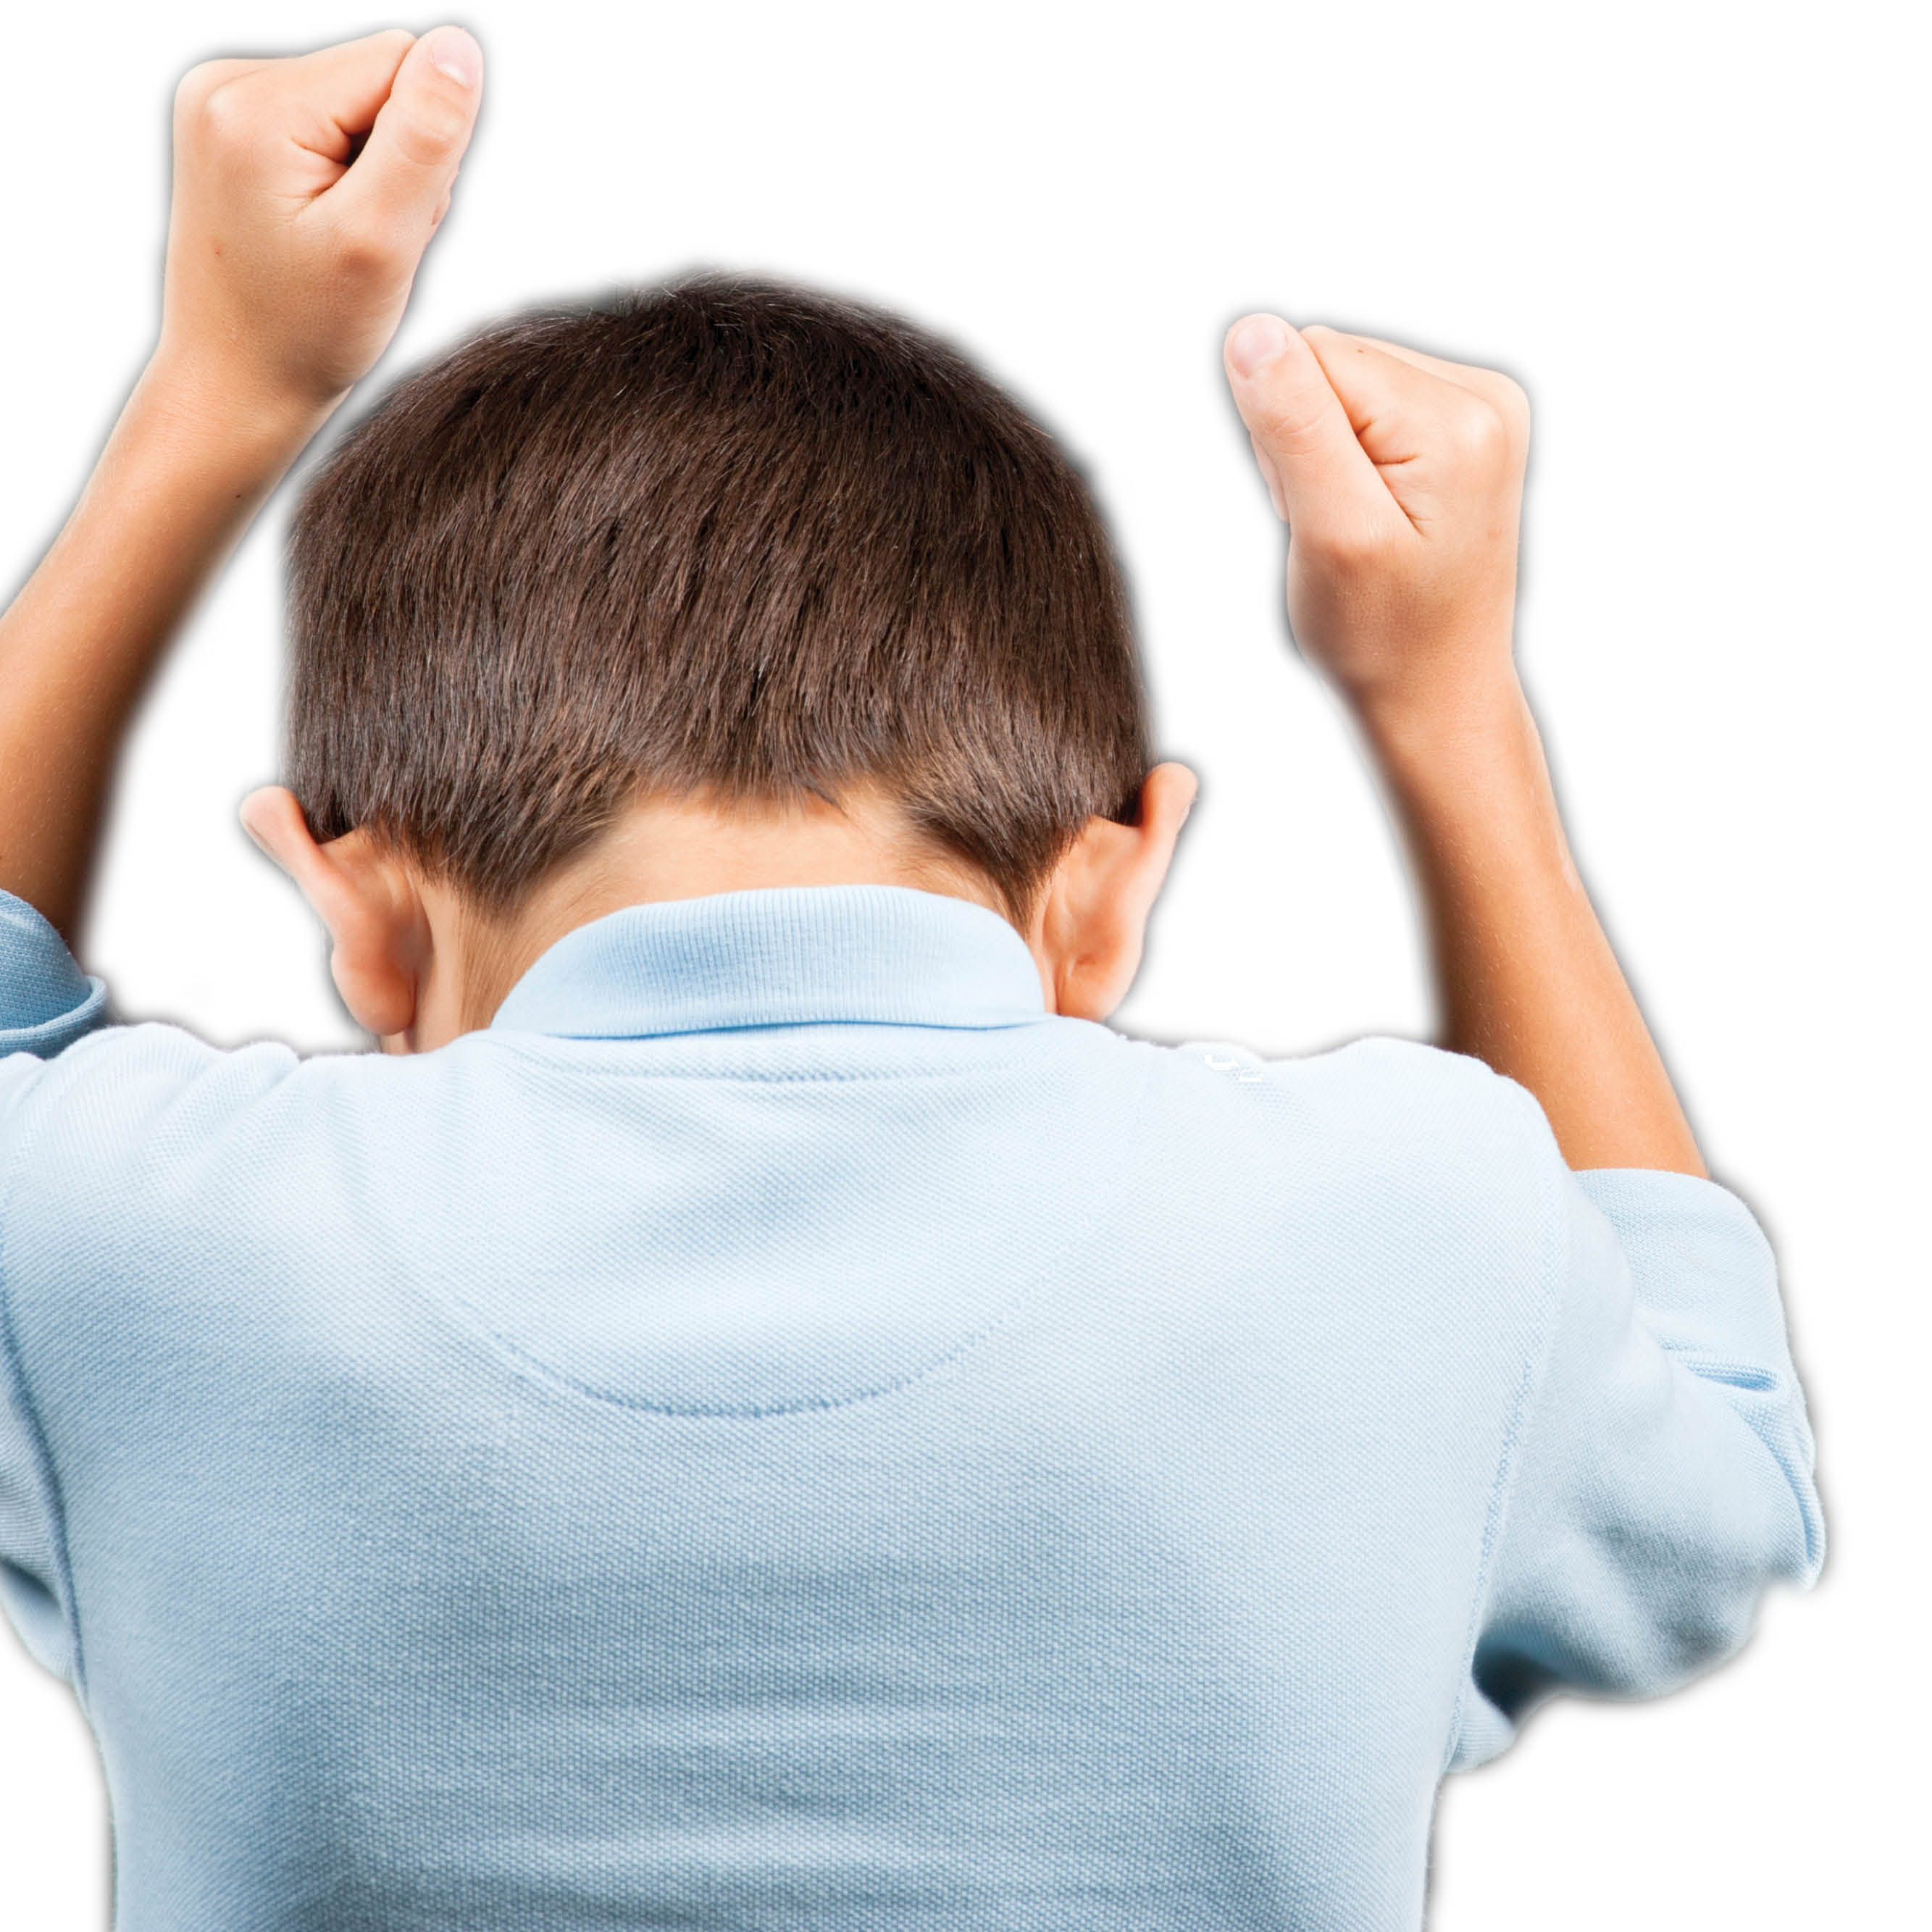 Self Harming Behavior In Children With Autism Can